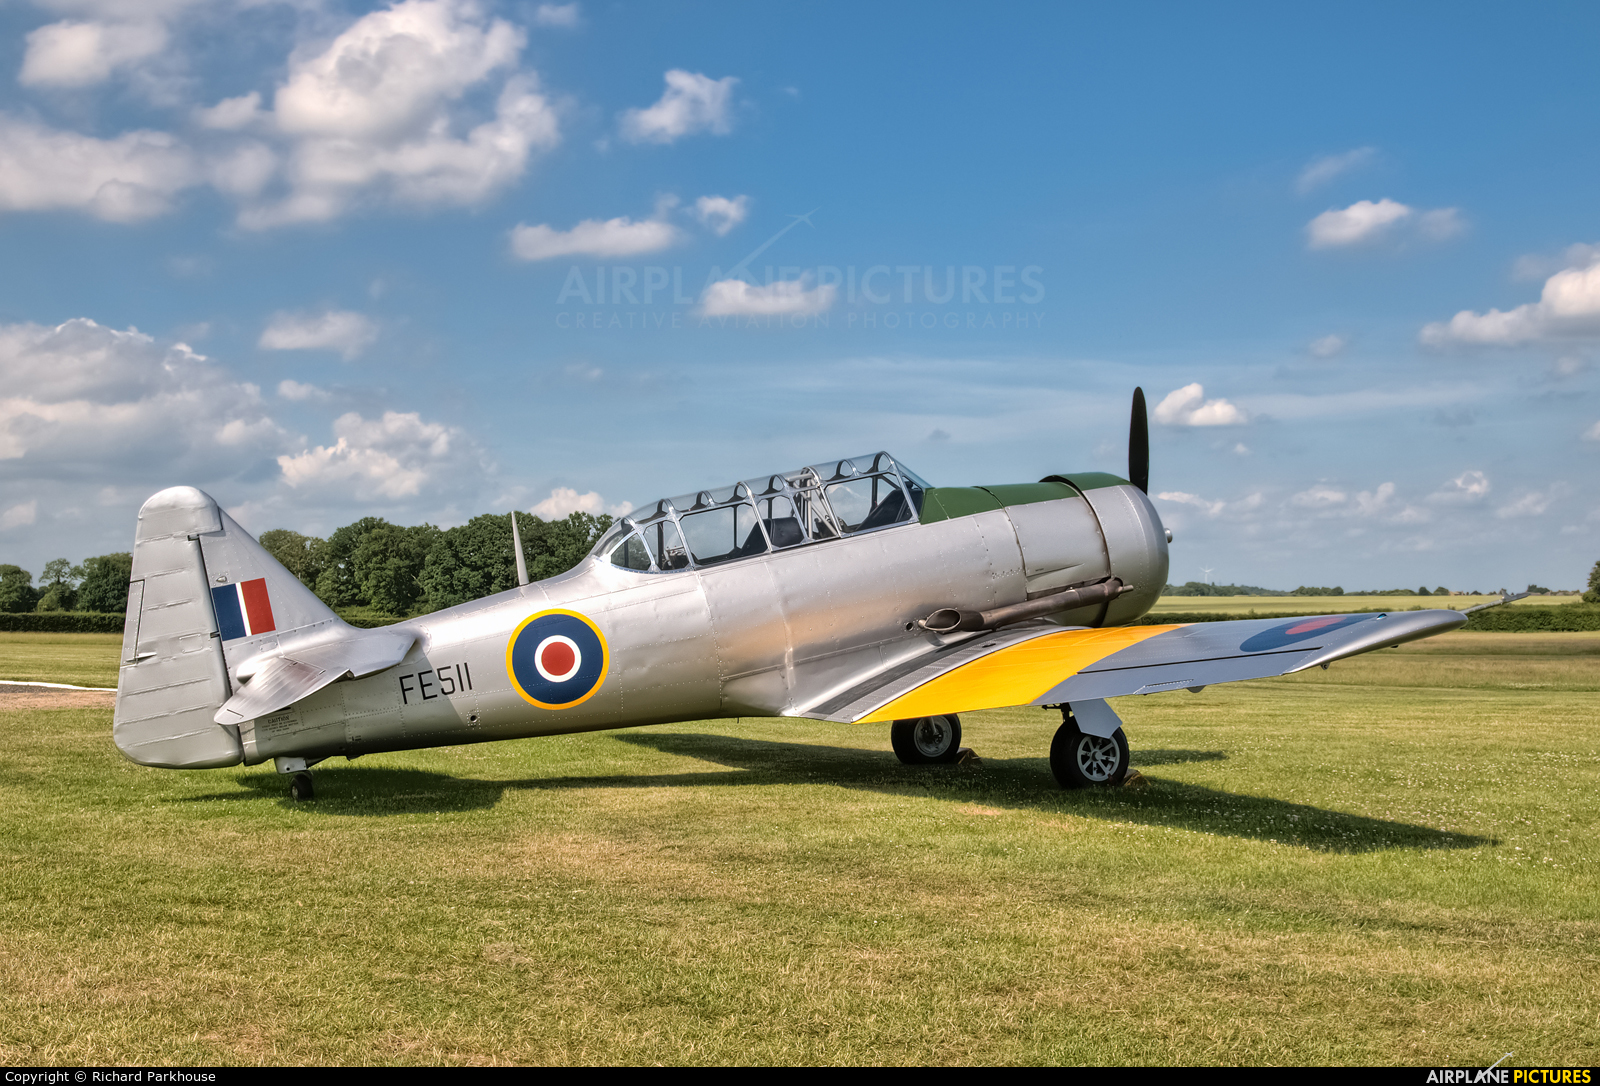 The Shuttleworth Collection FE511 aircraft at Old Warden